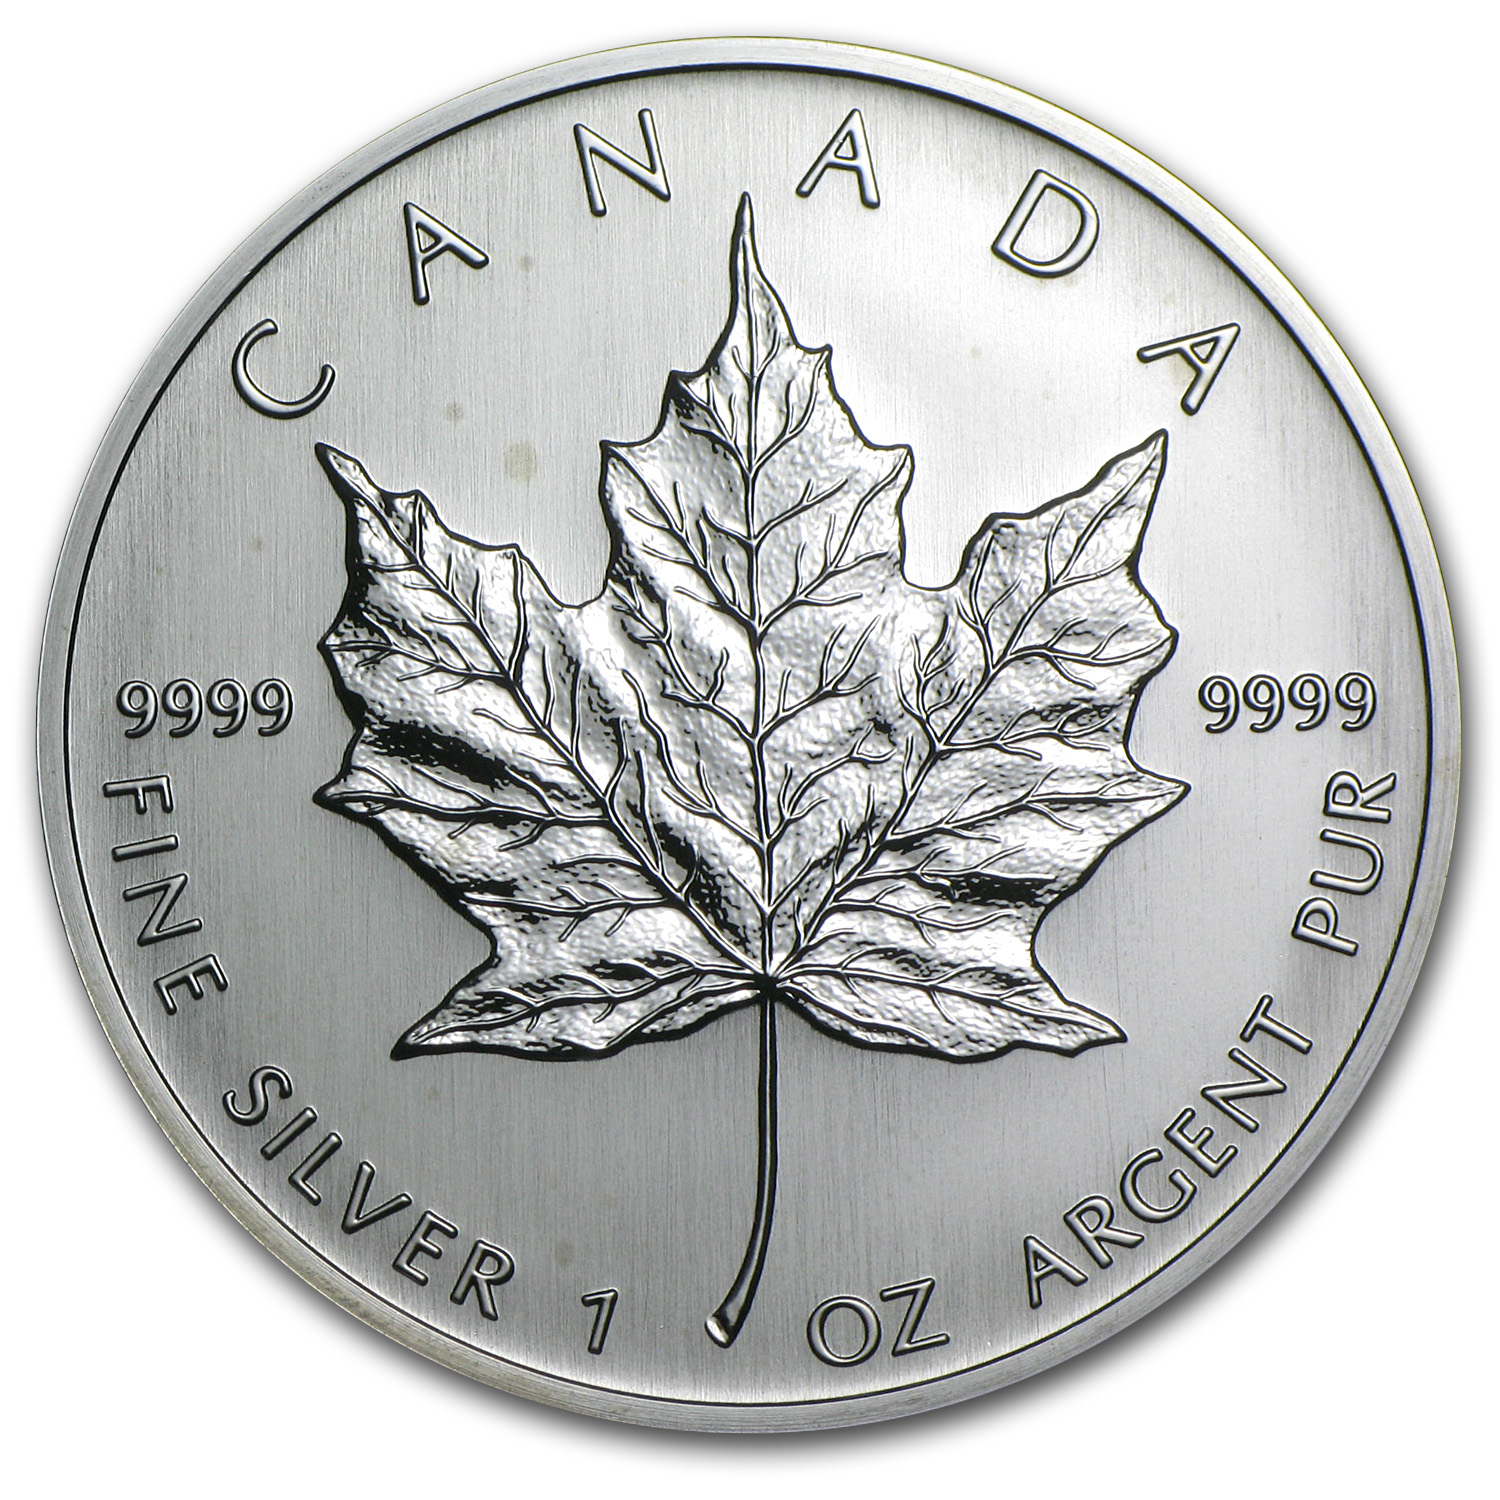 2004 1 oz Silver Canadian Maple Leaf (Brilliant Uncirculated)